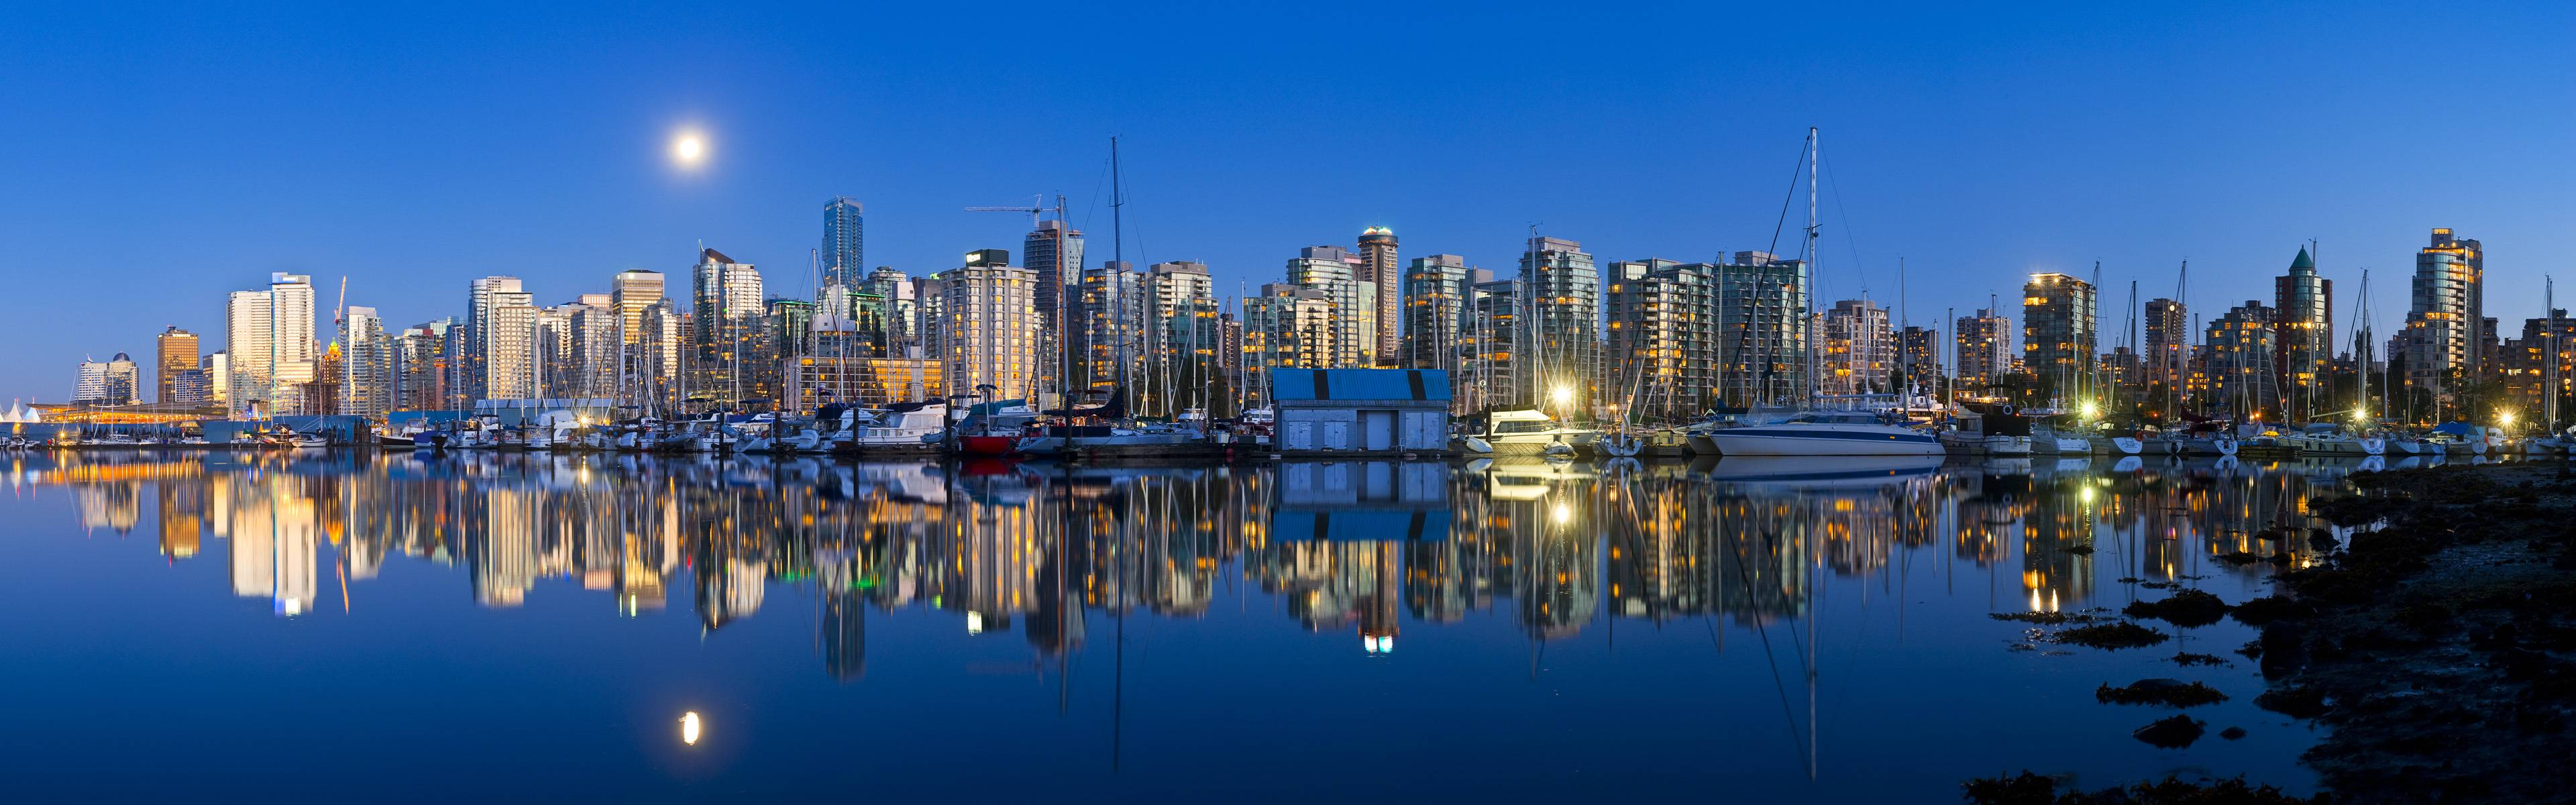 Cityscapes panoramic wallpaper theme for Windows 8   Windows 8 3840x1200